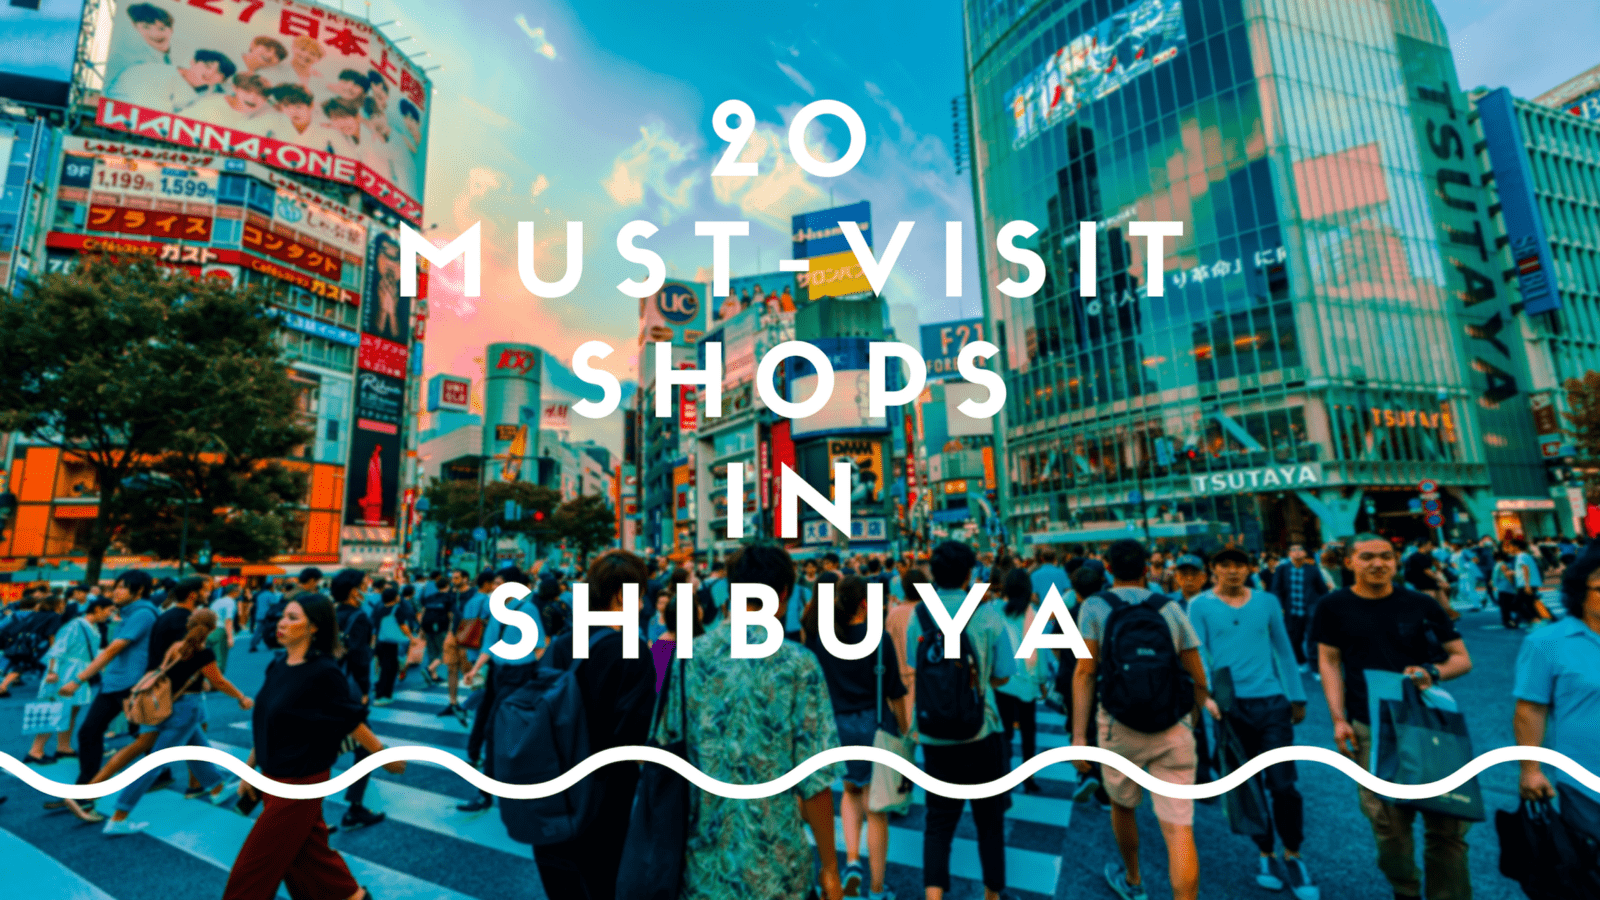 Shibuya Shopping Guide 2019: Must Visit Shops in Shibuya